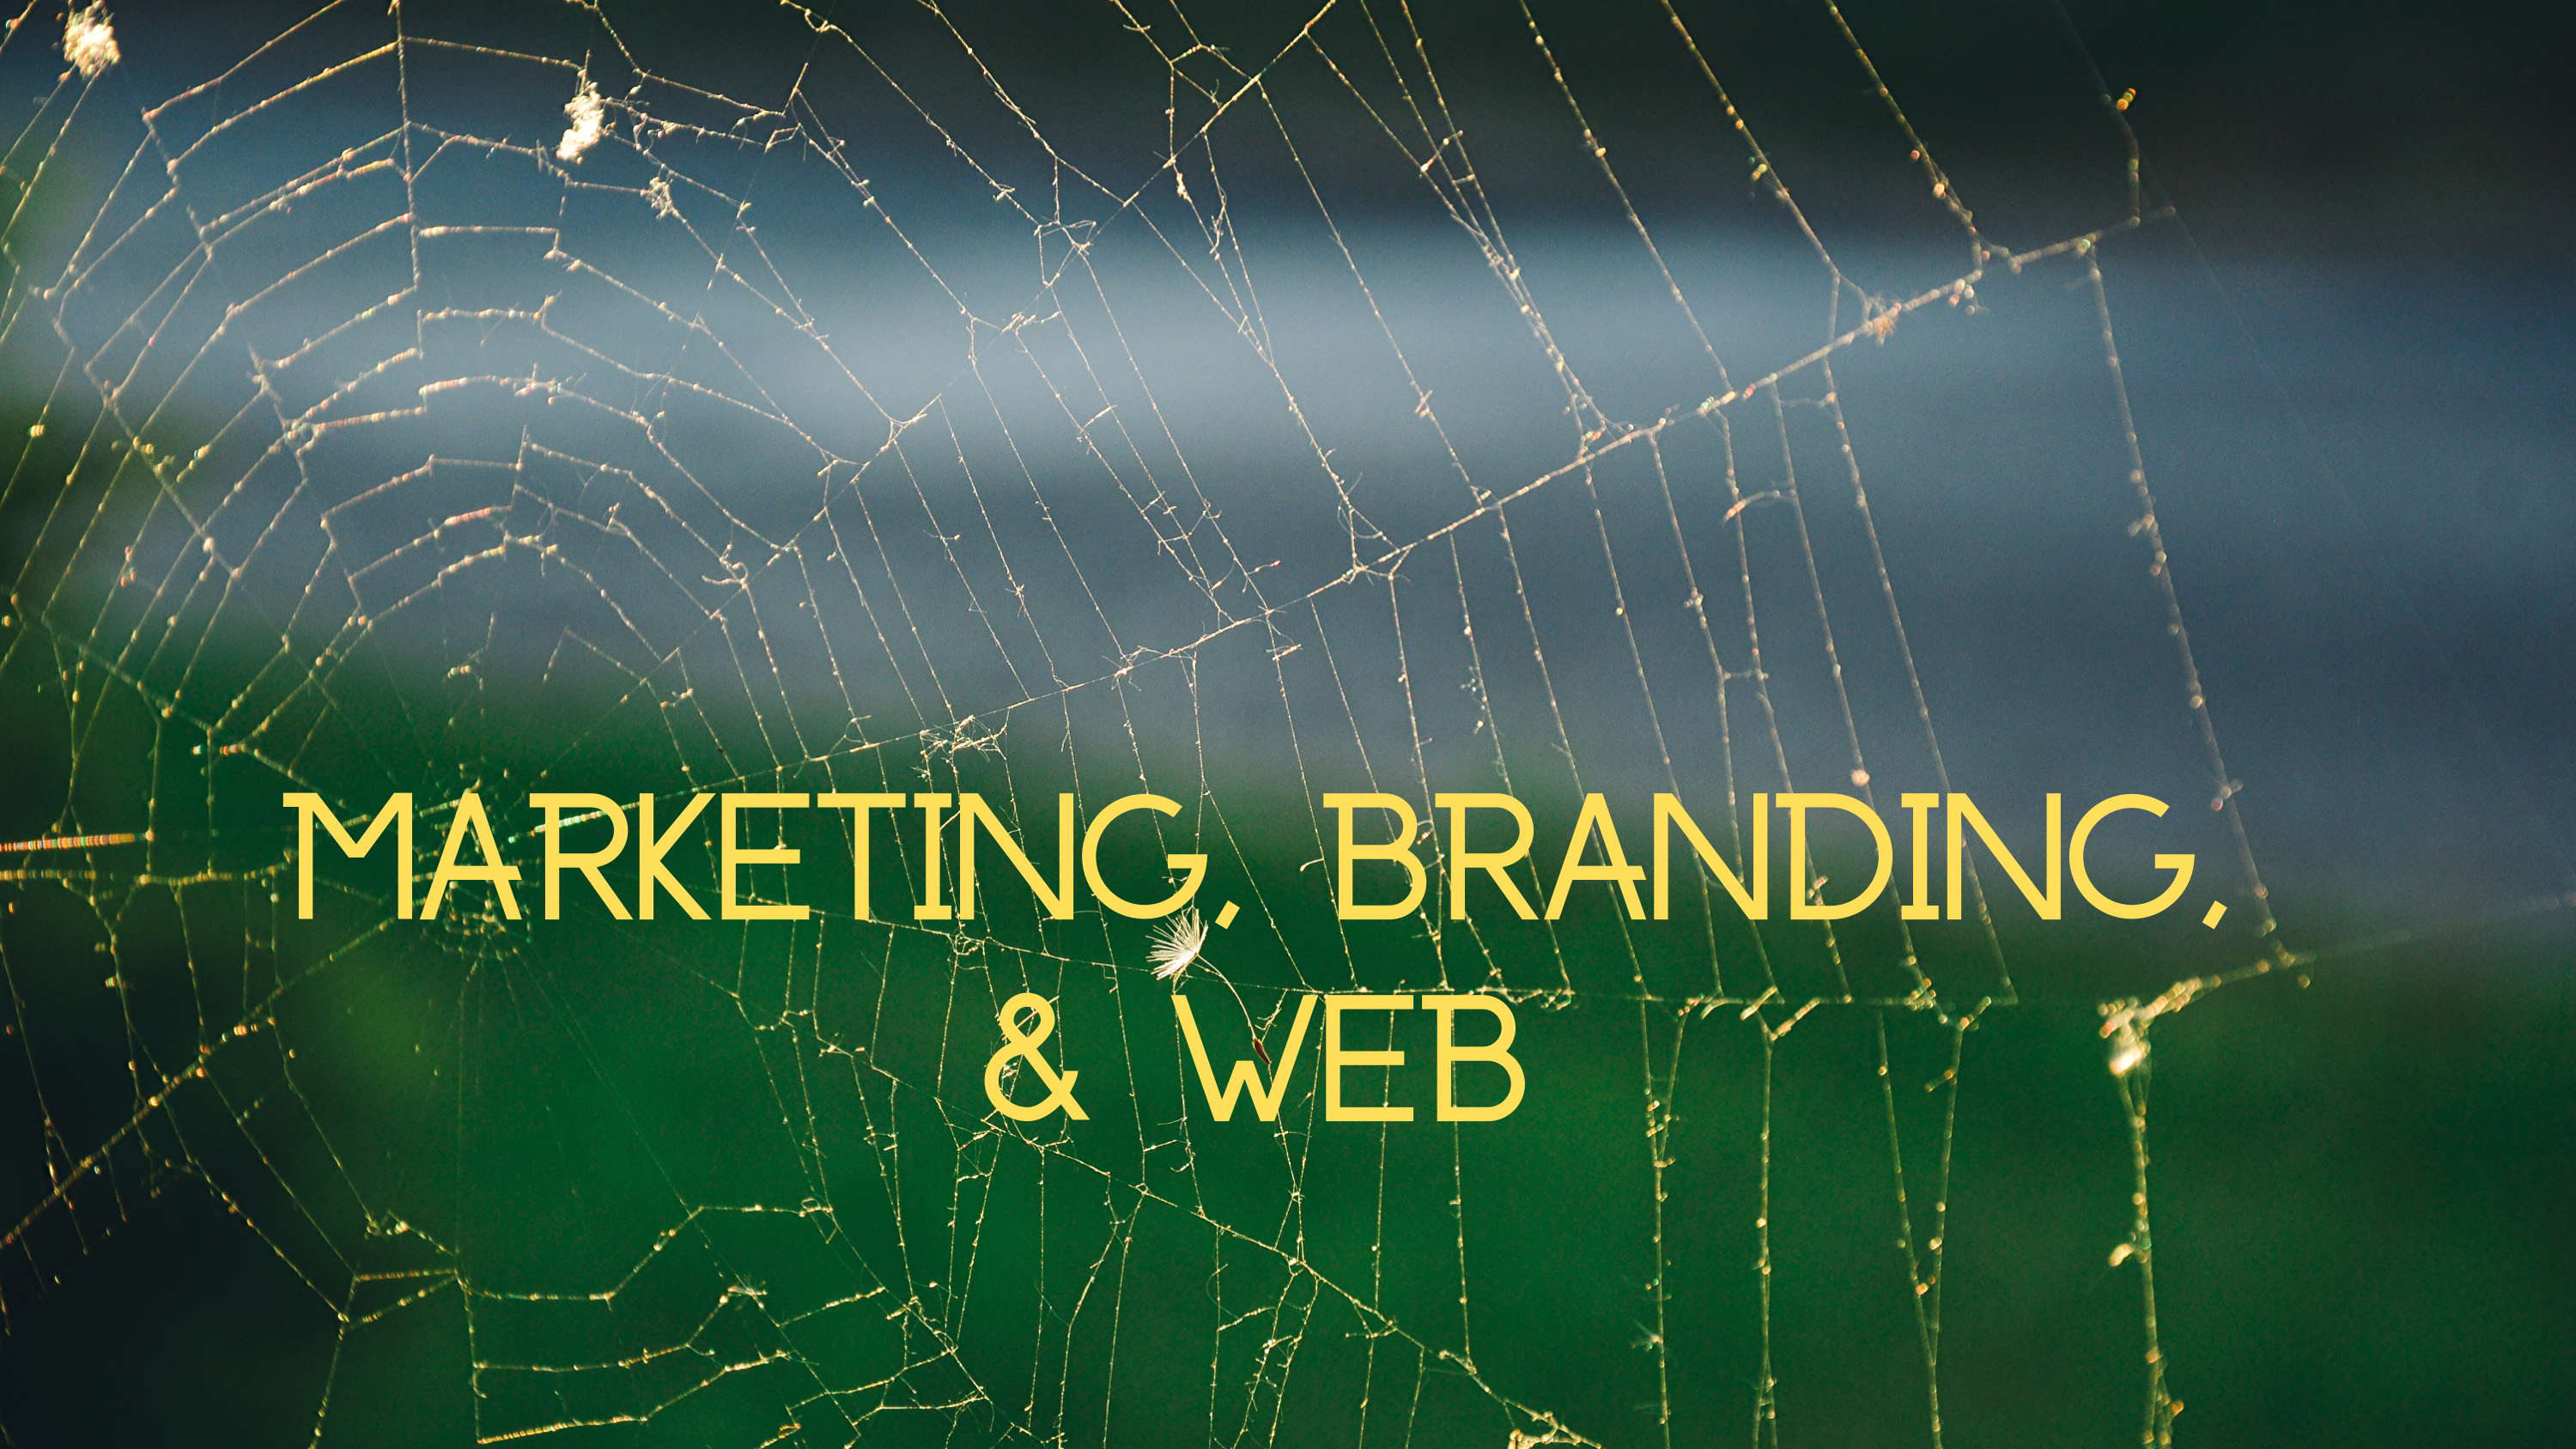 Marketing, Branding, & Web(2)